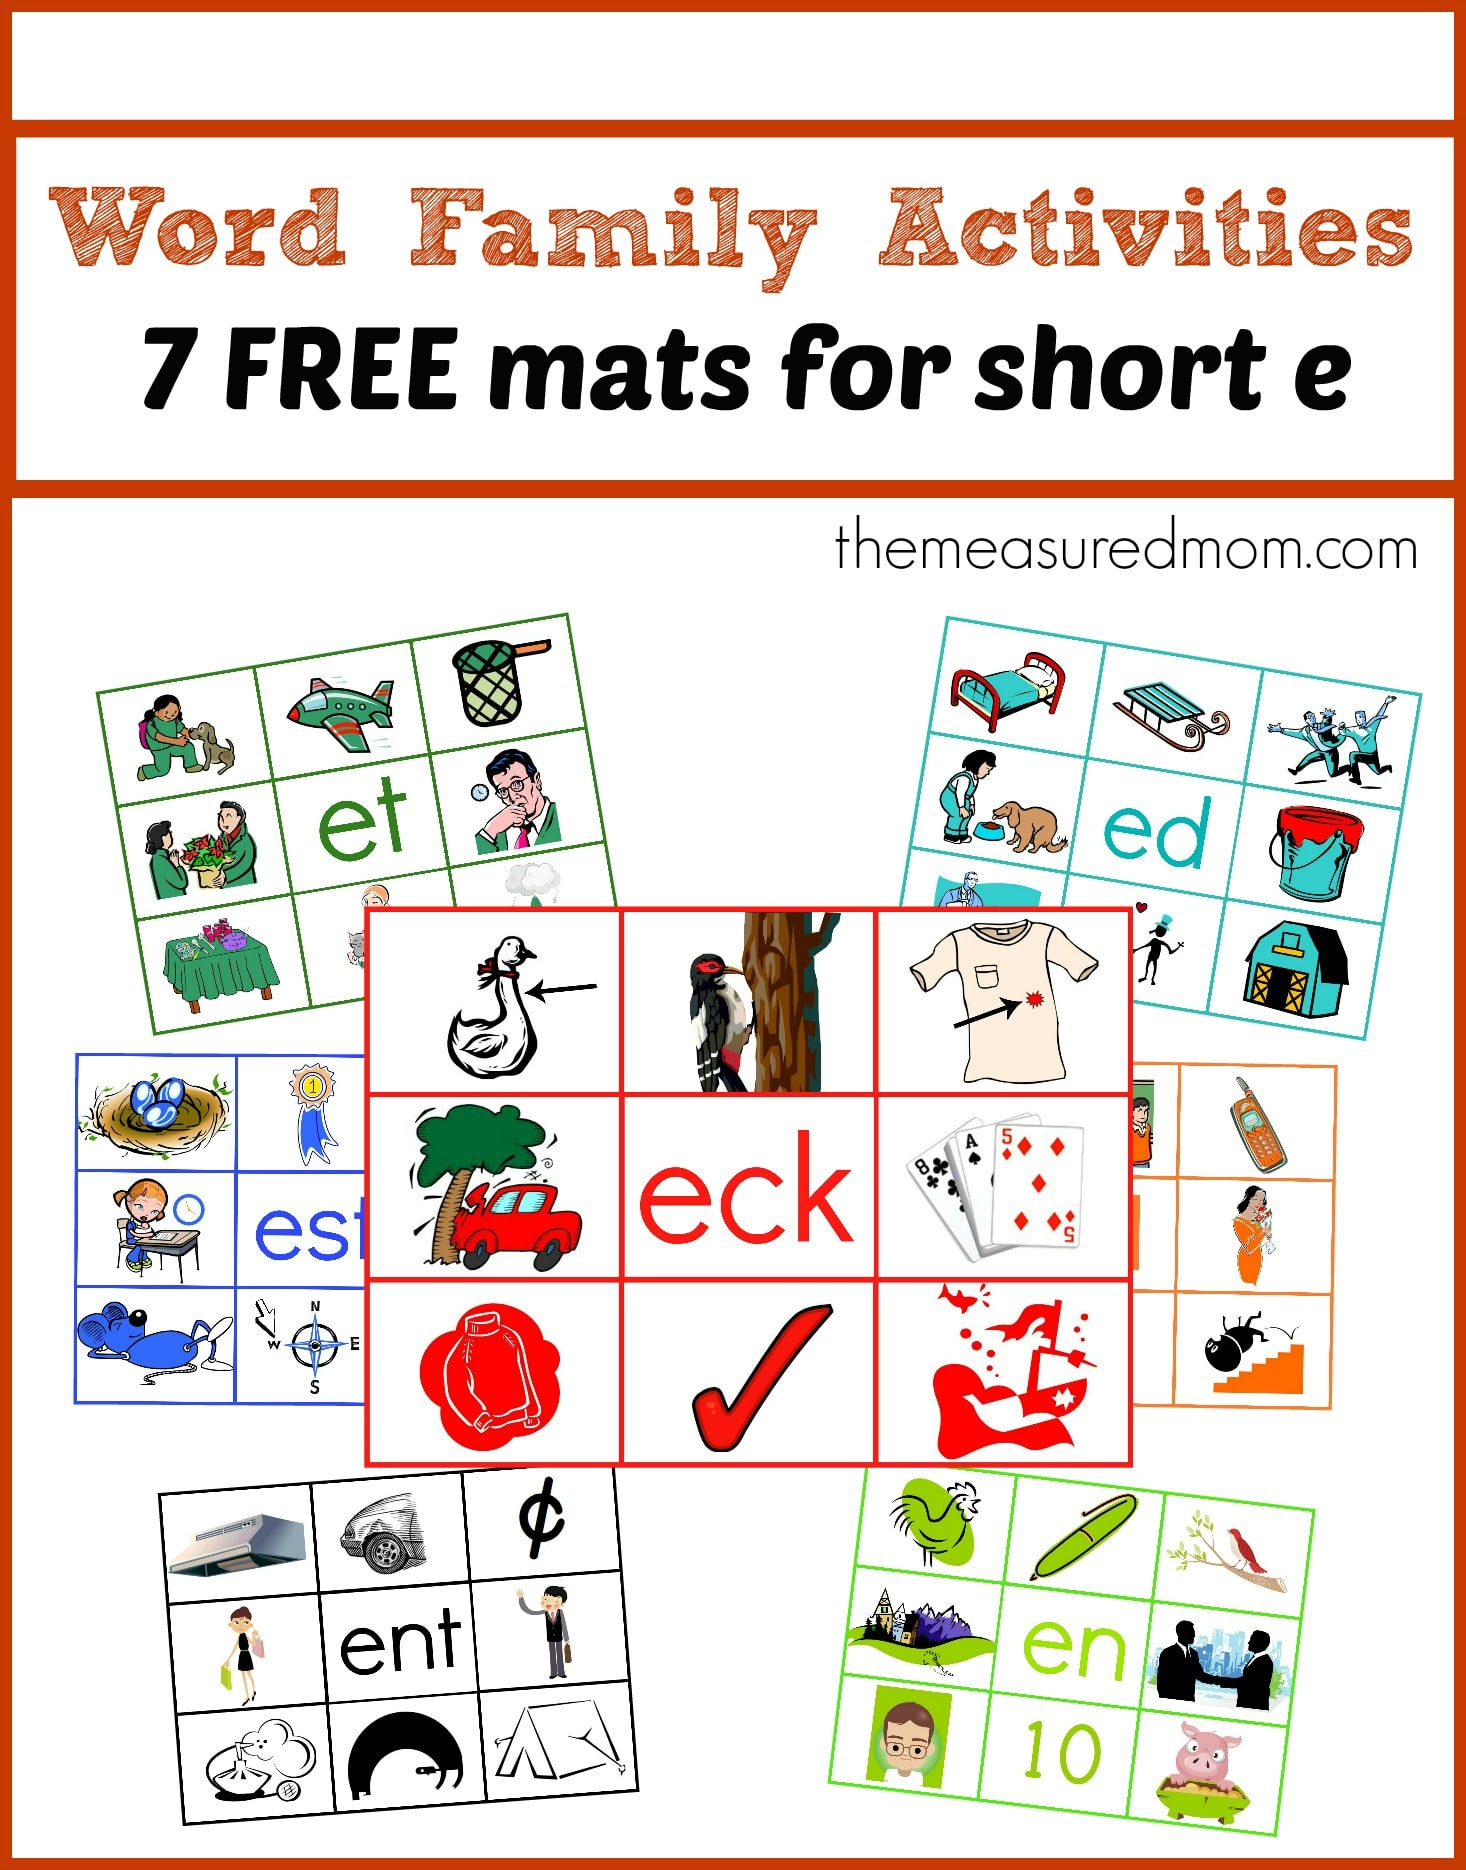 Word Family Activities - Free Read 'n Stick Mats for Short ...